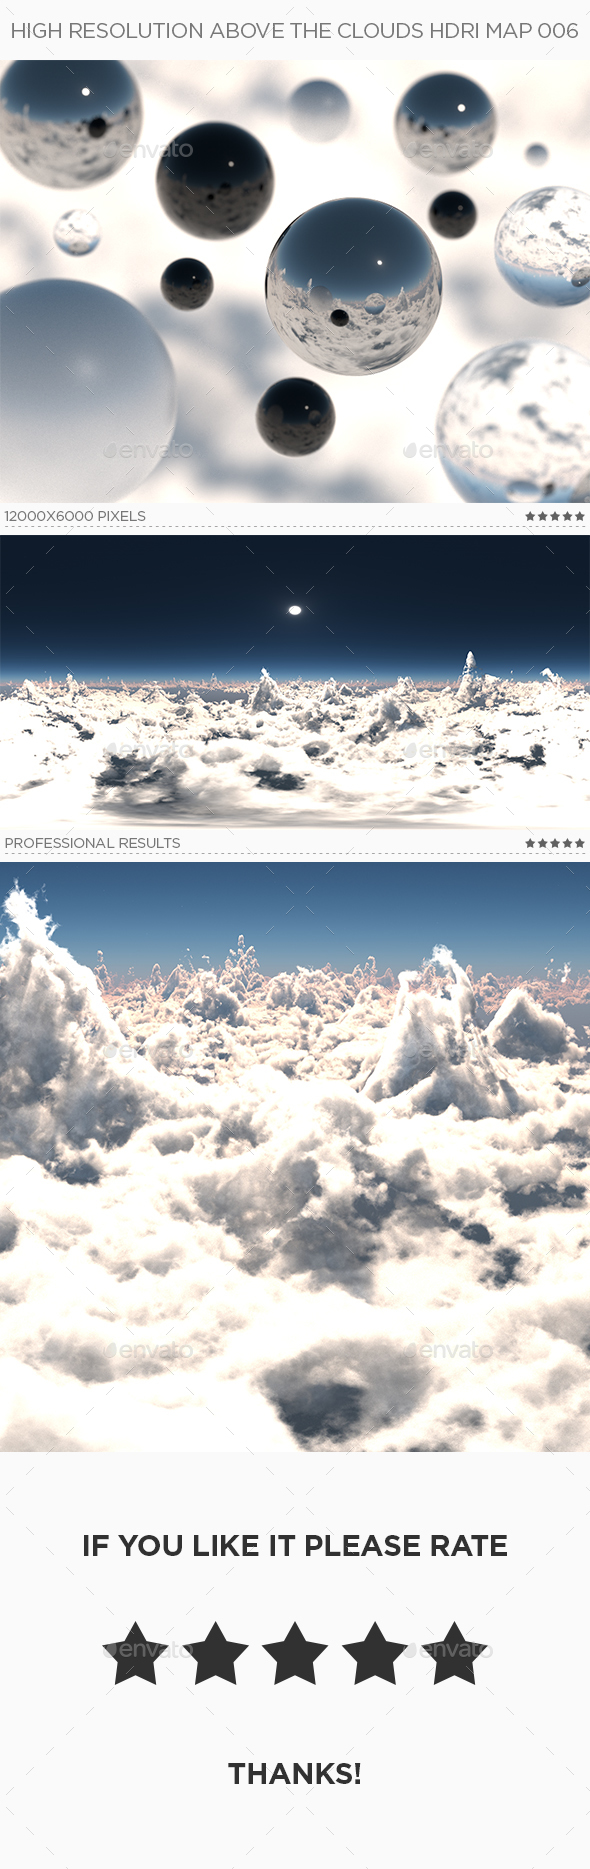 High Resolution Above The Clouds HDRi Map 006 - 3DOcean Item for Sale